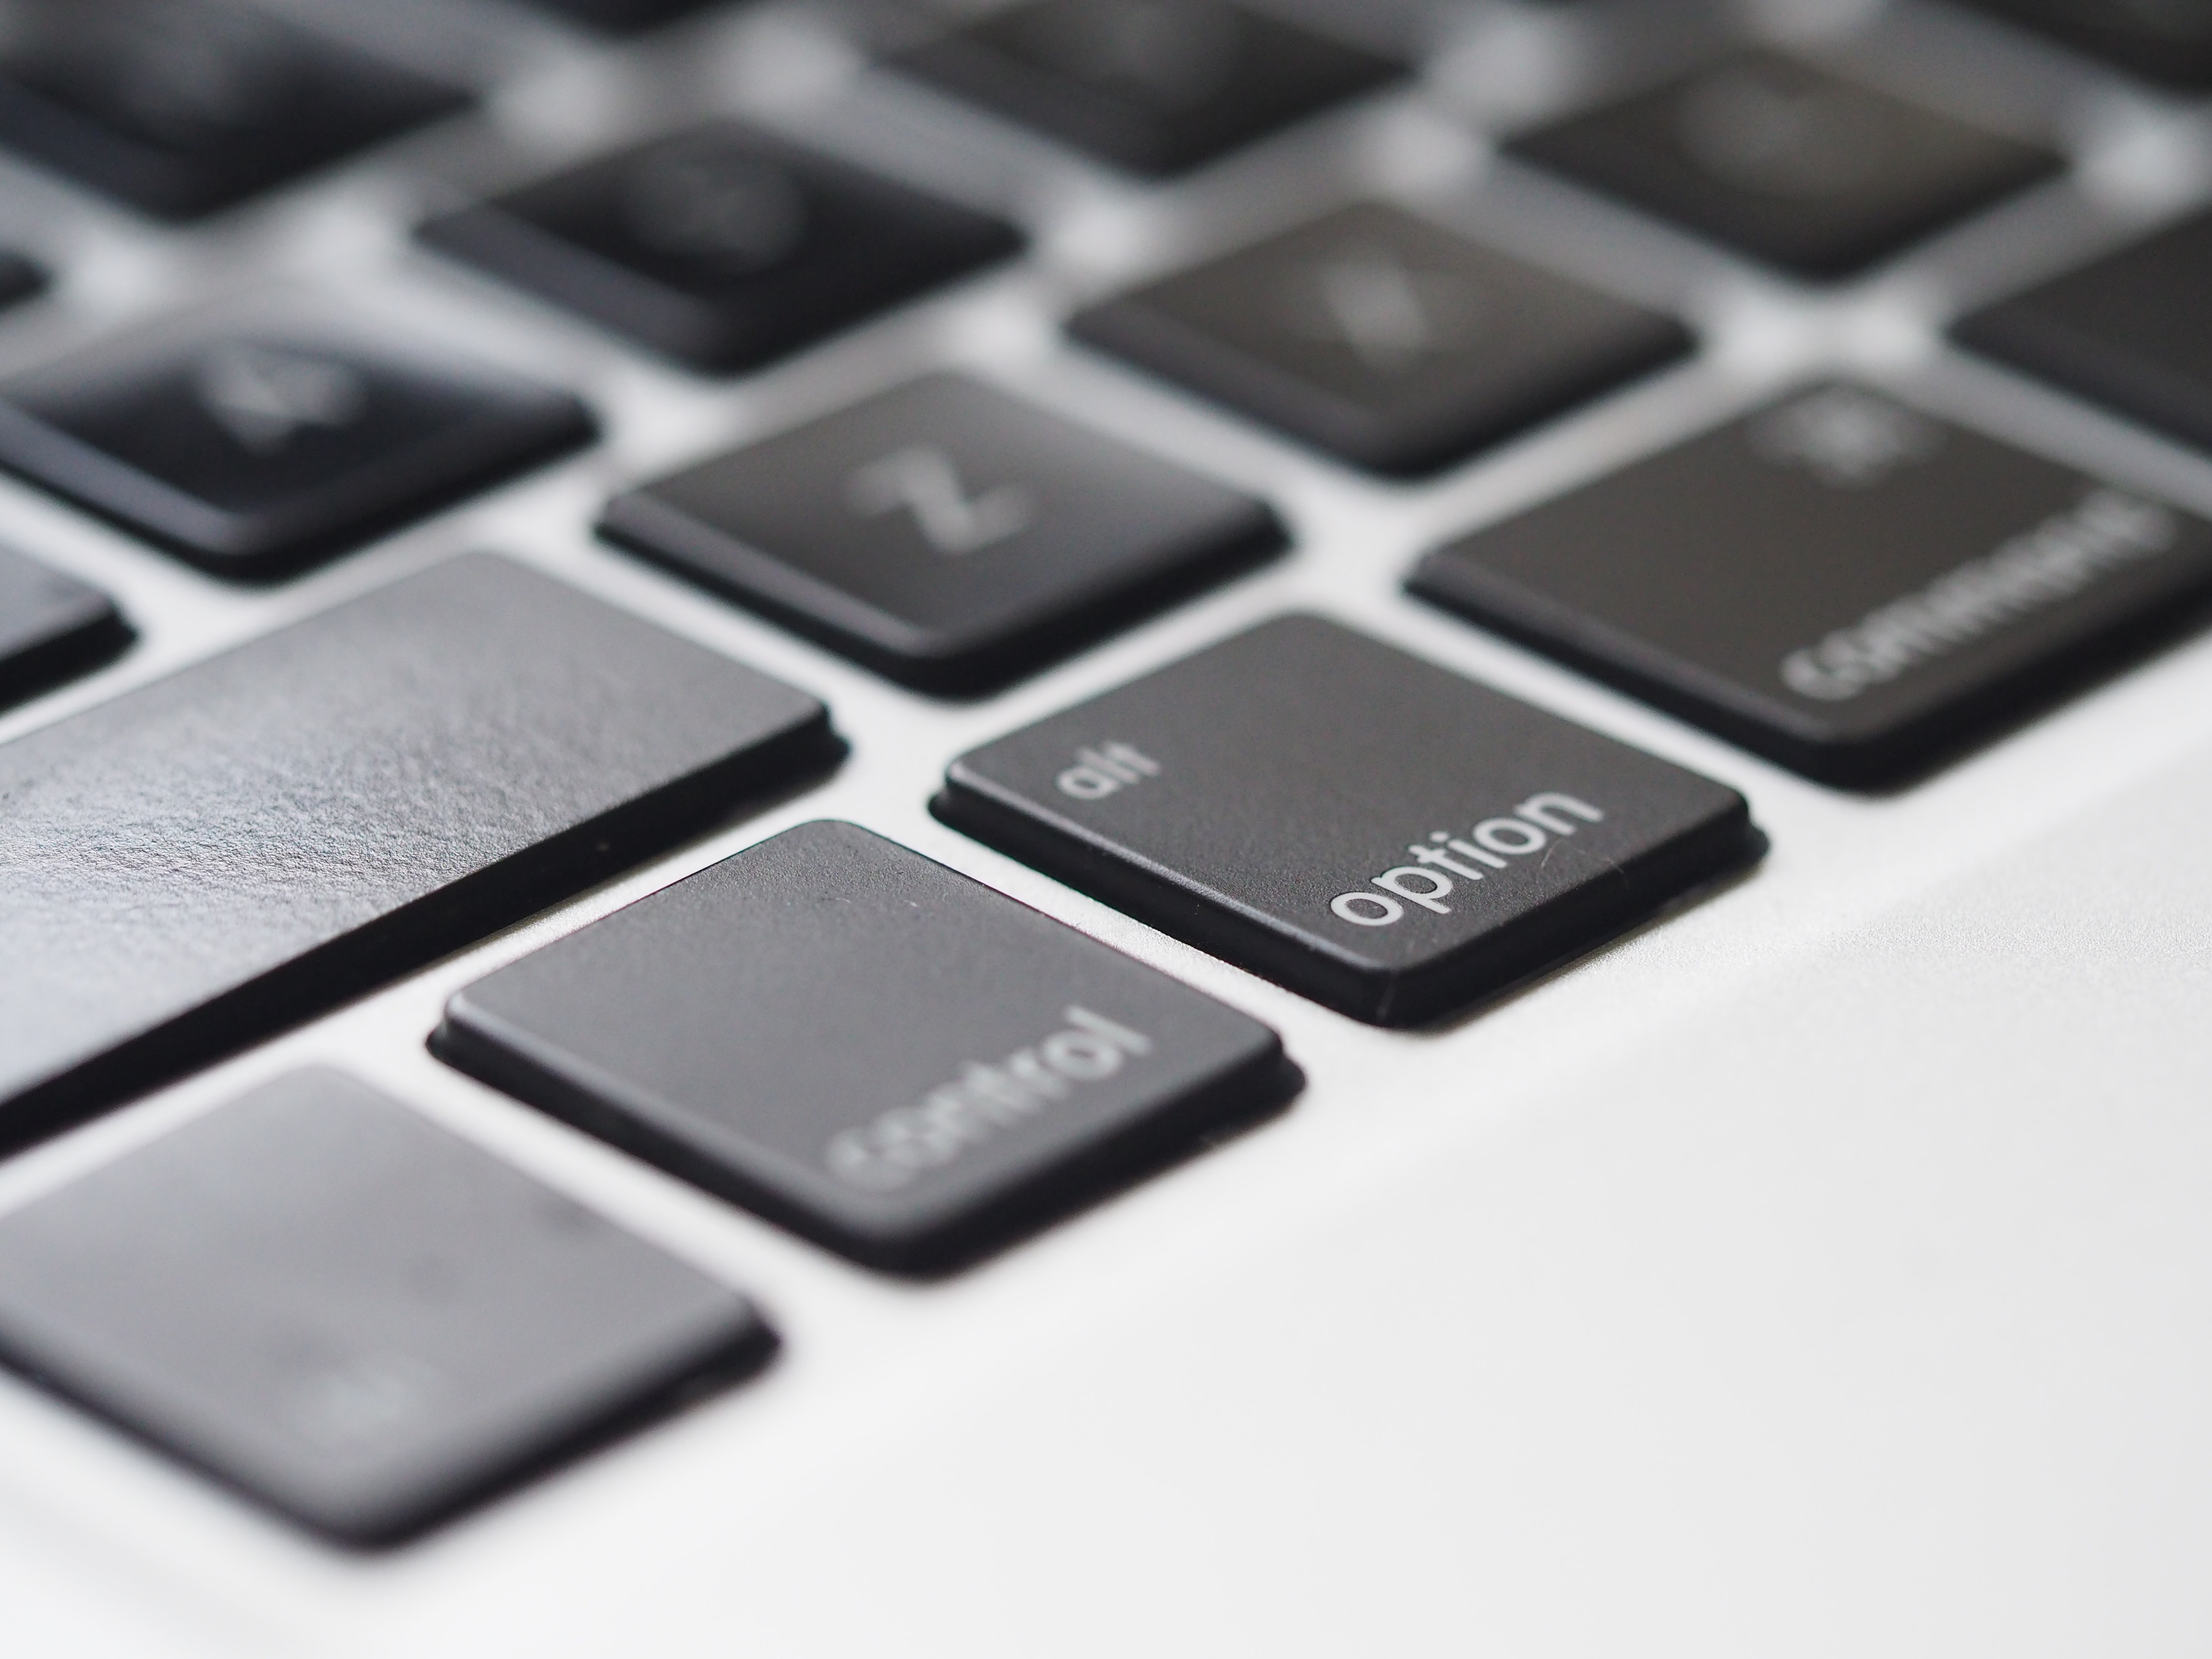 https://www.pexels.com/photo/close-up-photography-of-macbook-keyboard-810079/